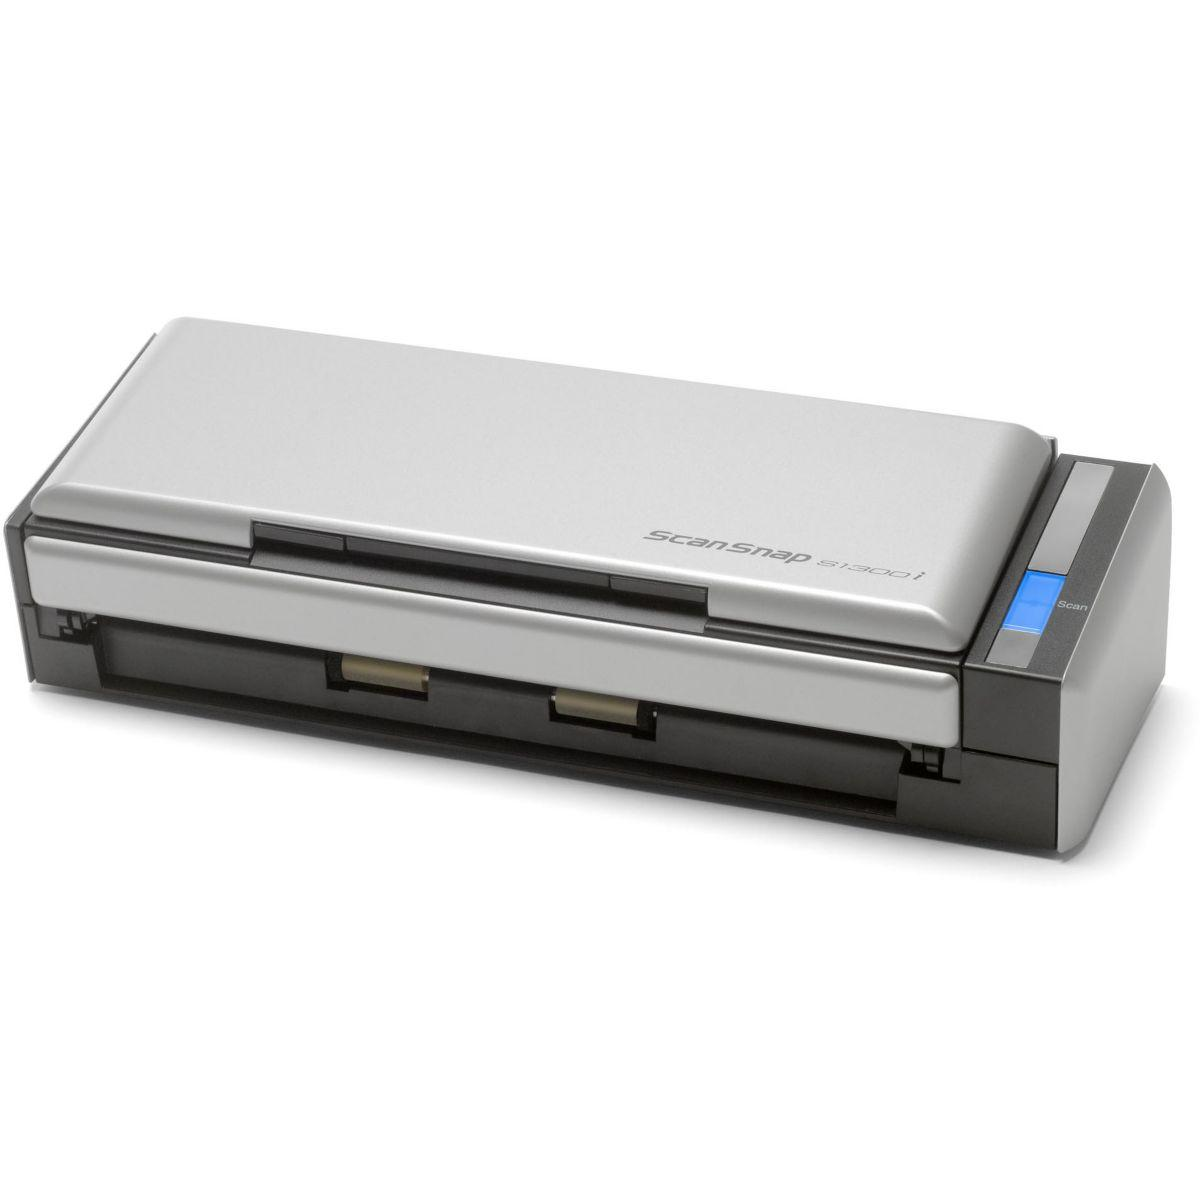 Scanner portable fujitsu scansnap s1300i hybrid mac - 2% de re...